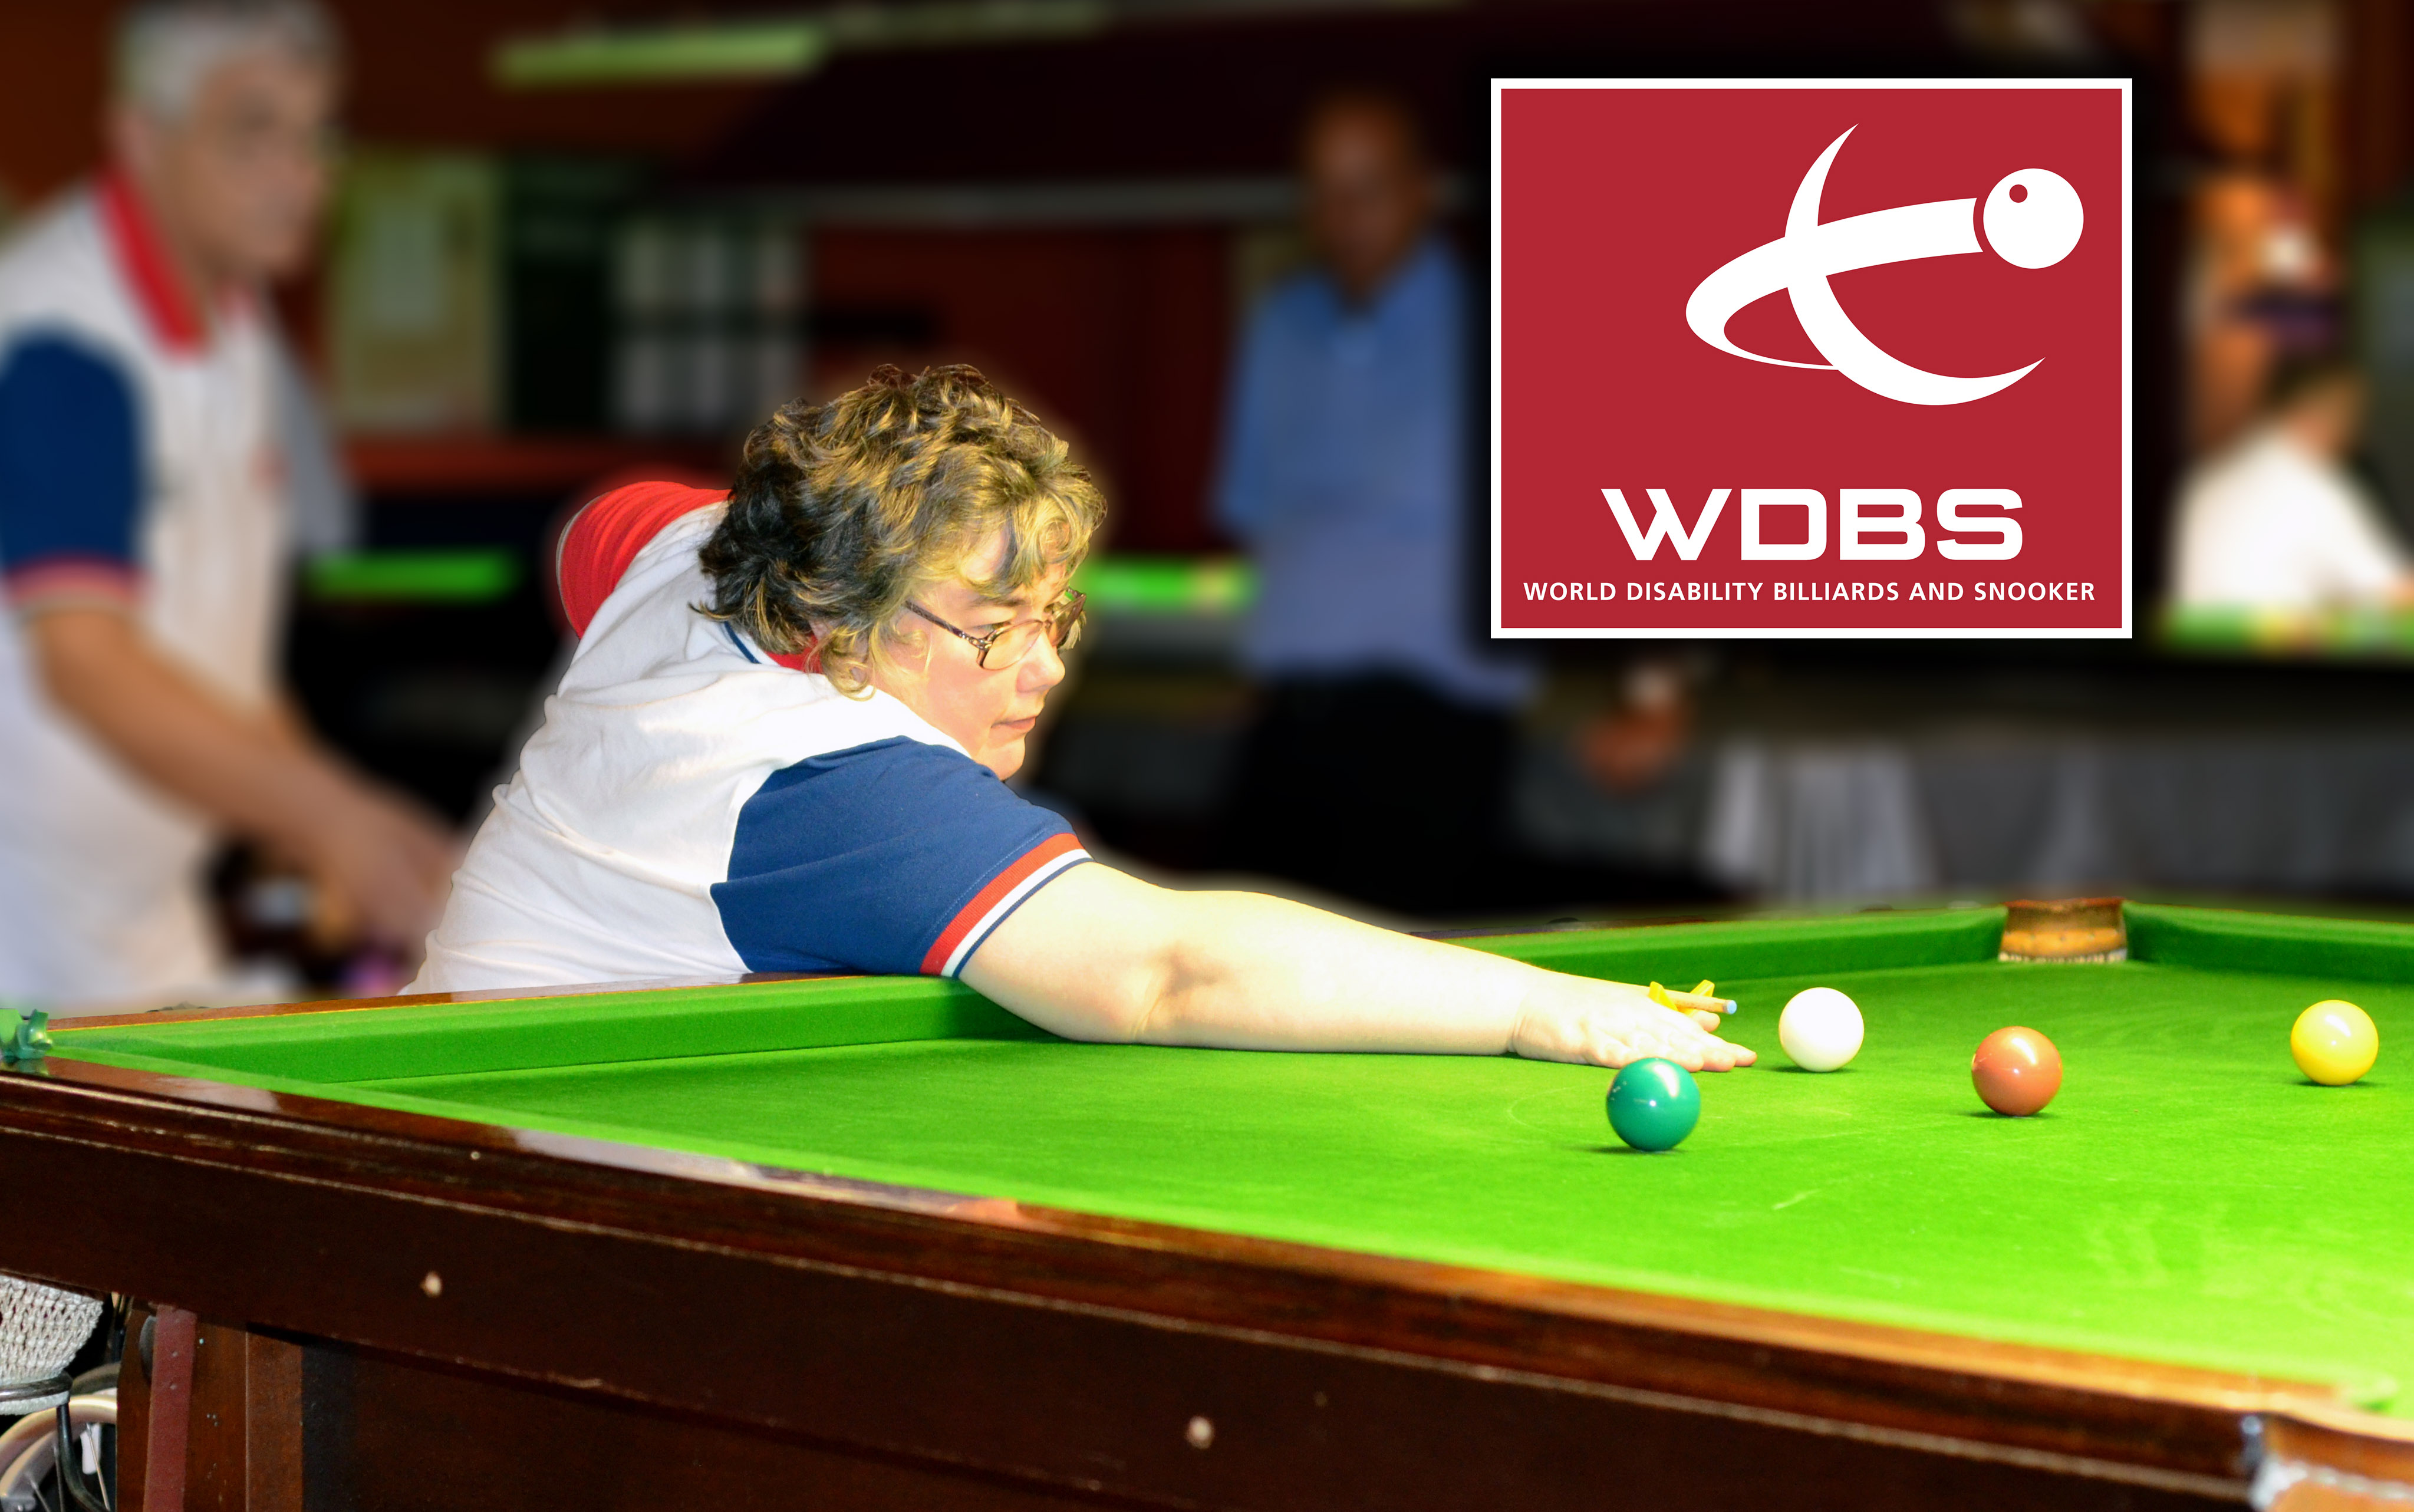 Disability Snooker